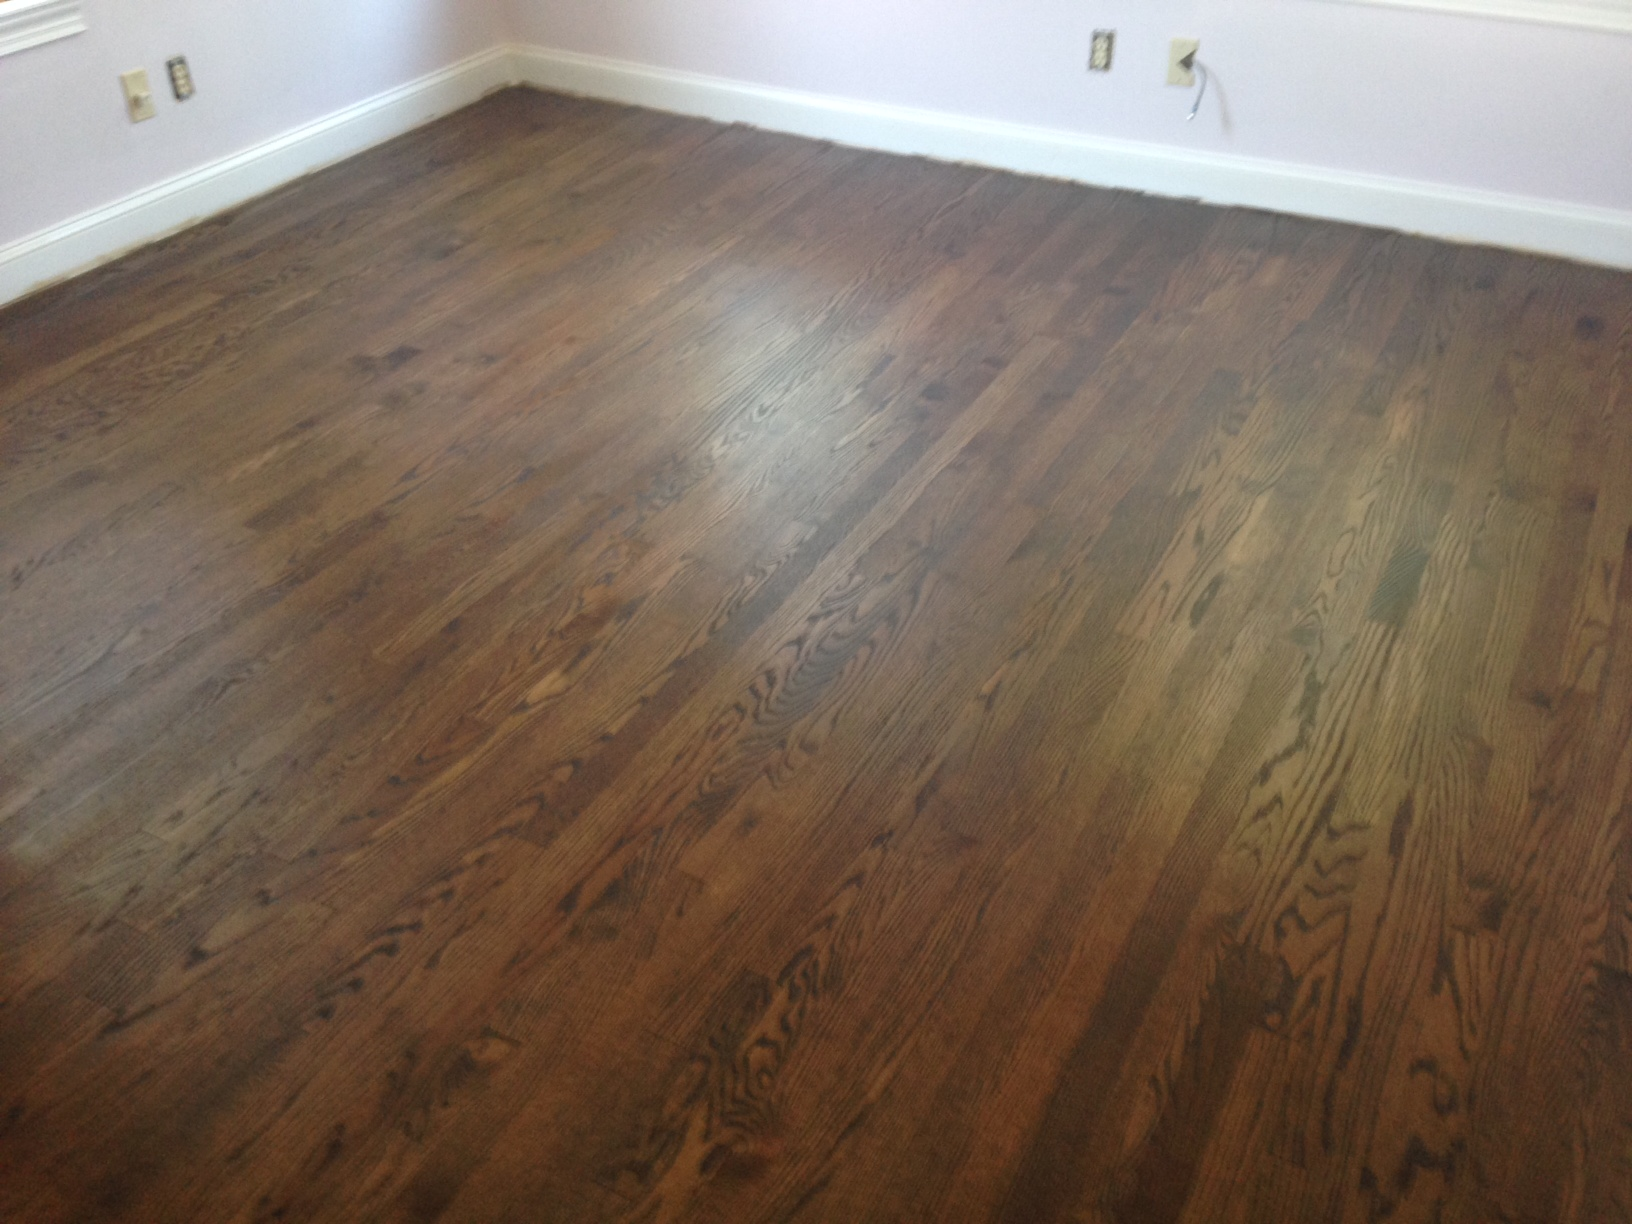 New hardwood floors wood floor refinishing epping forest for Where to get hardwood floors